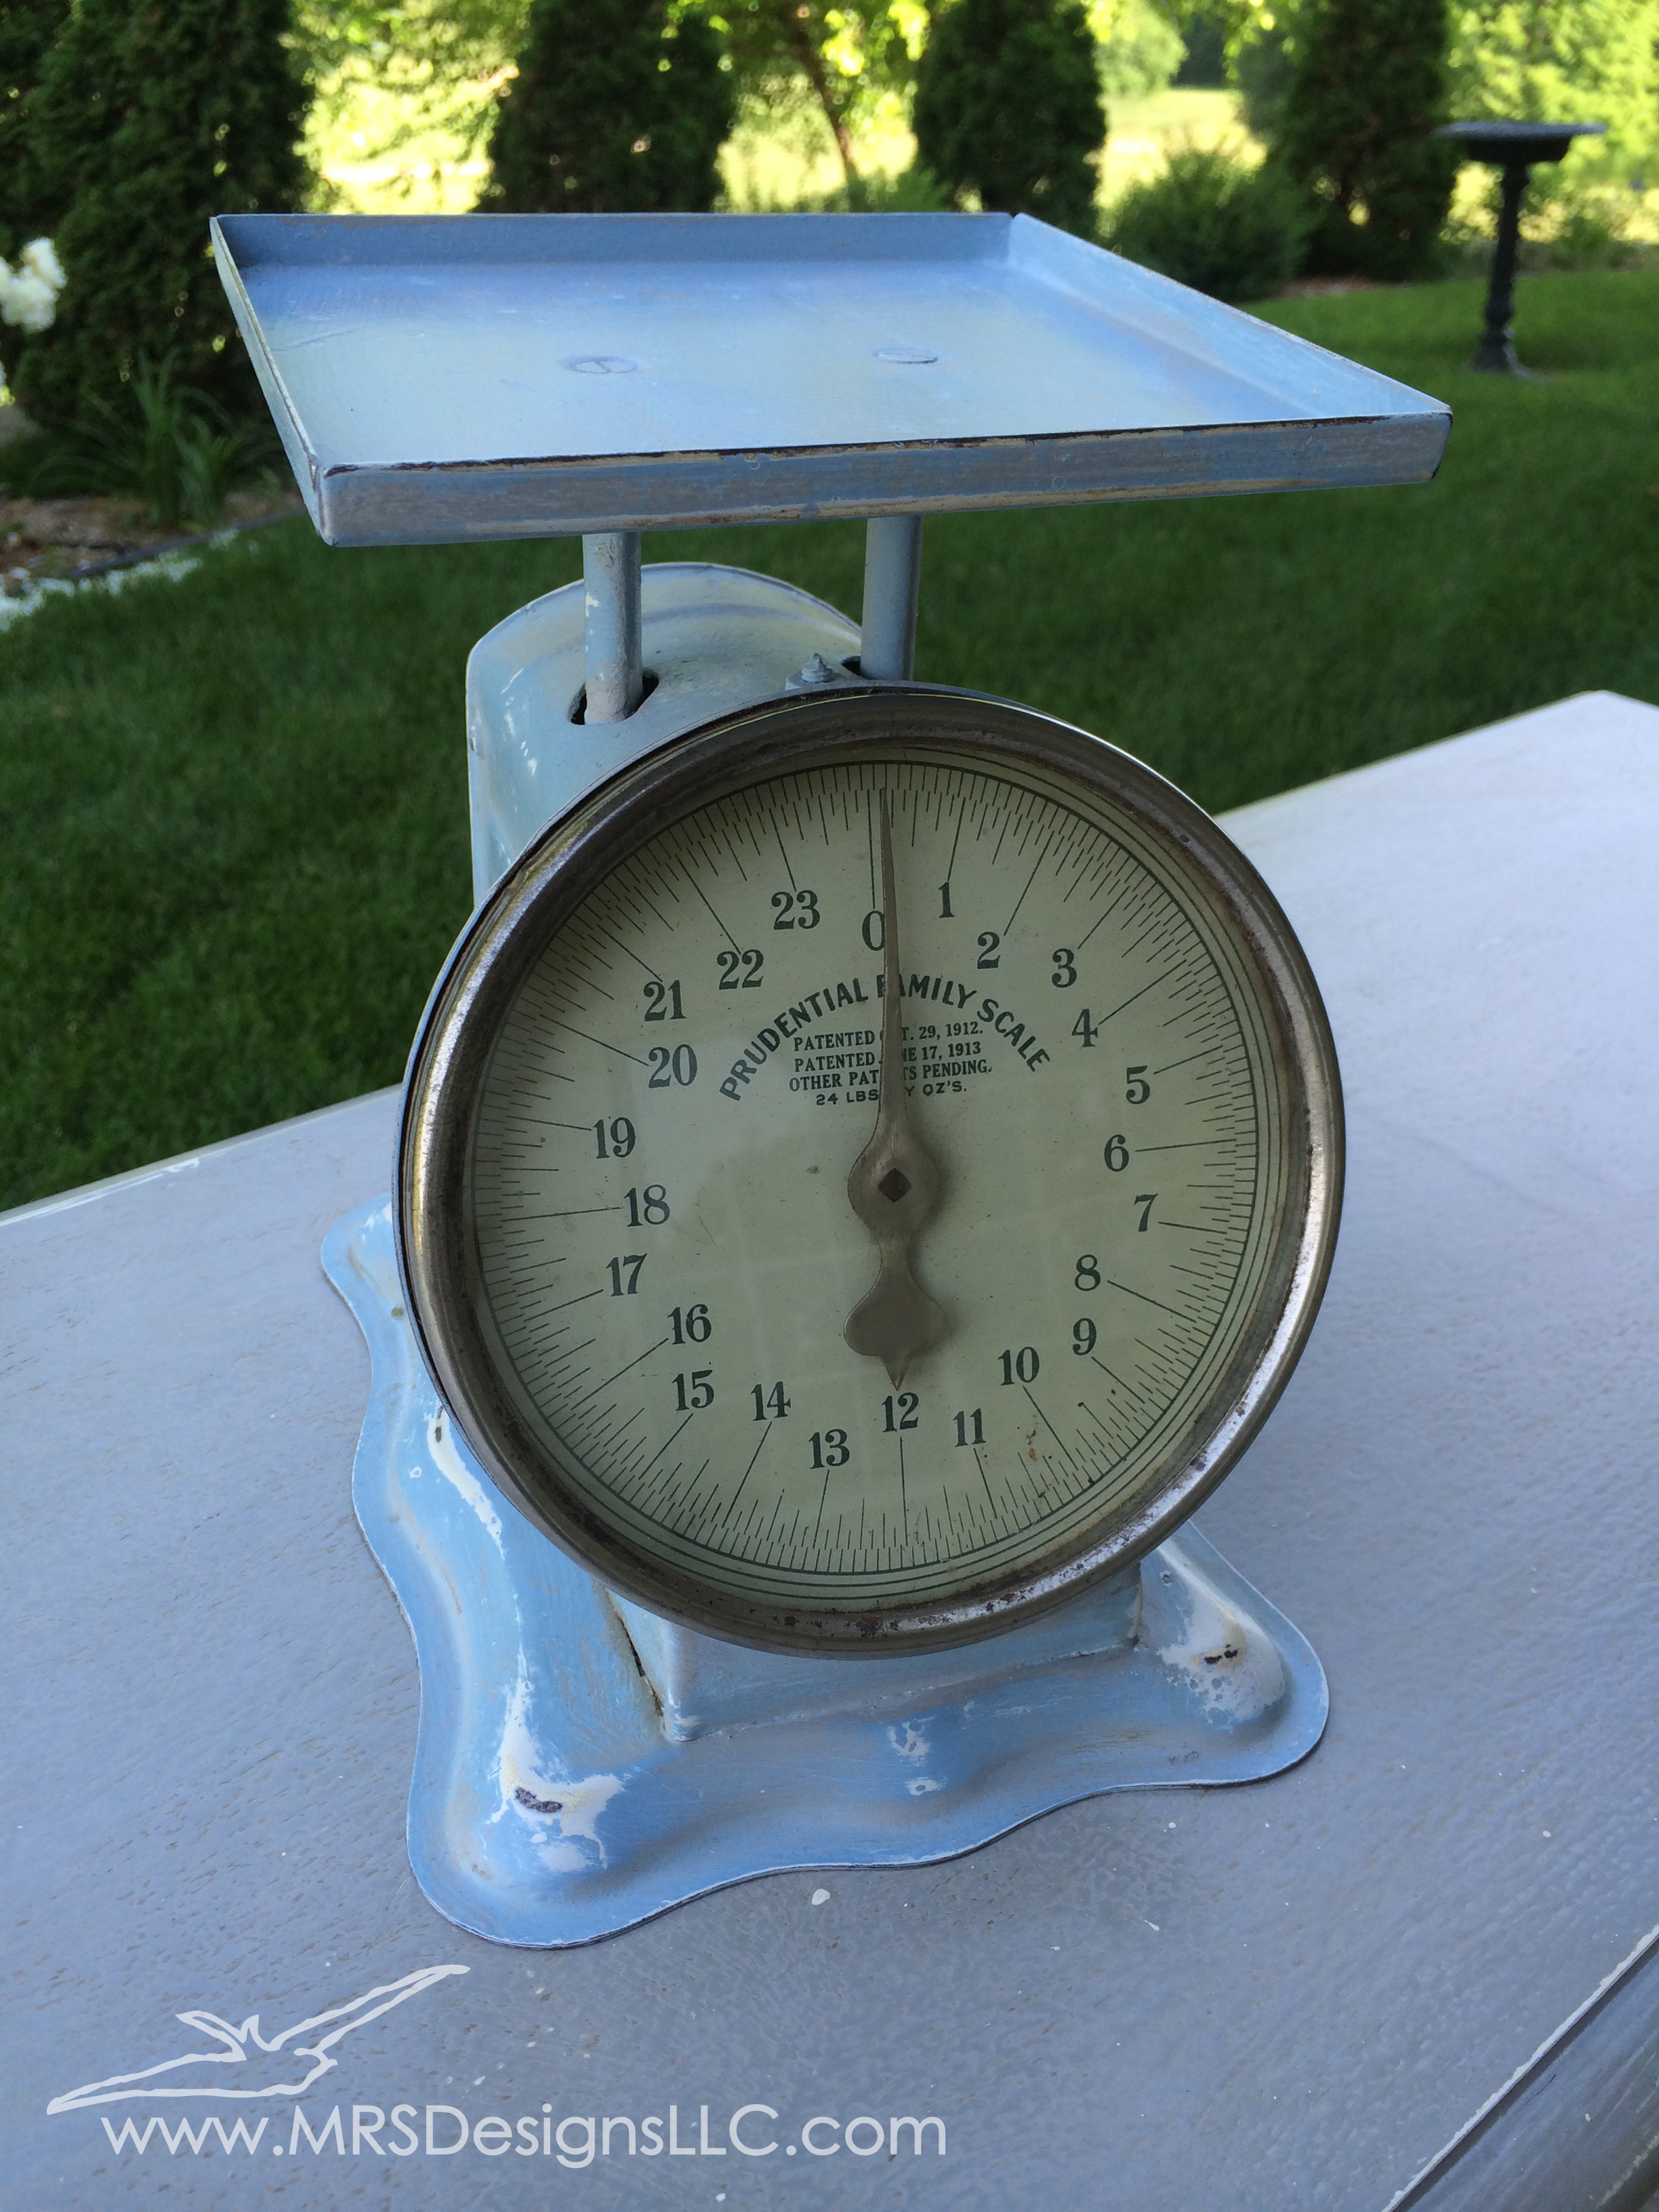 MRS Designs Blog - Refinishing a Vintage Scale, Final Product